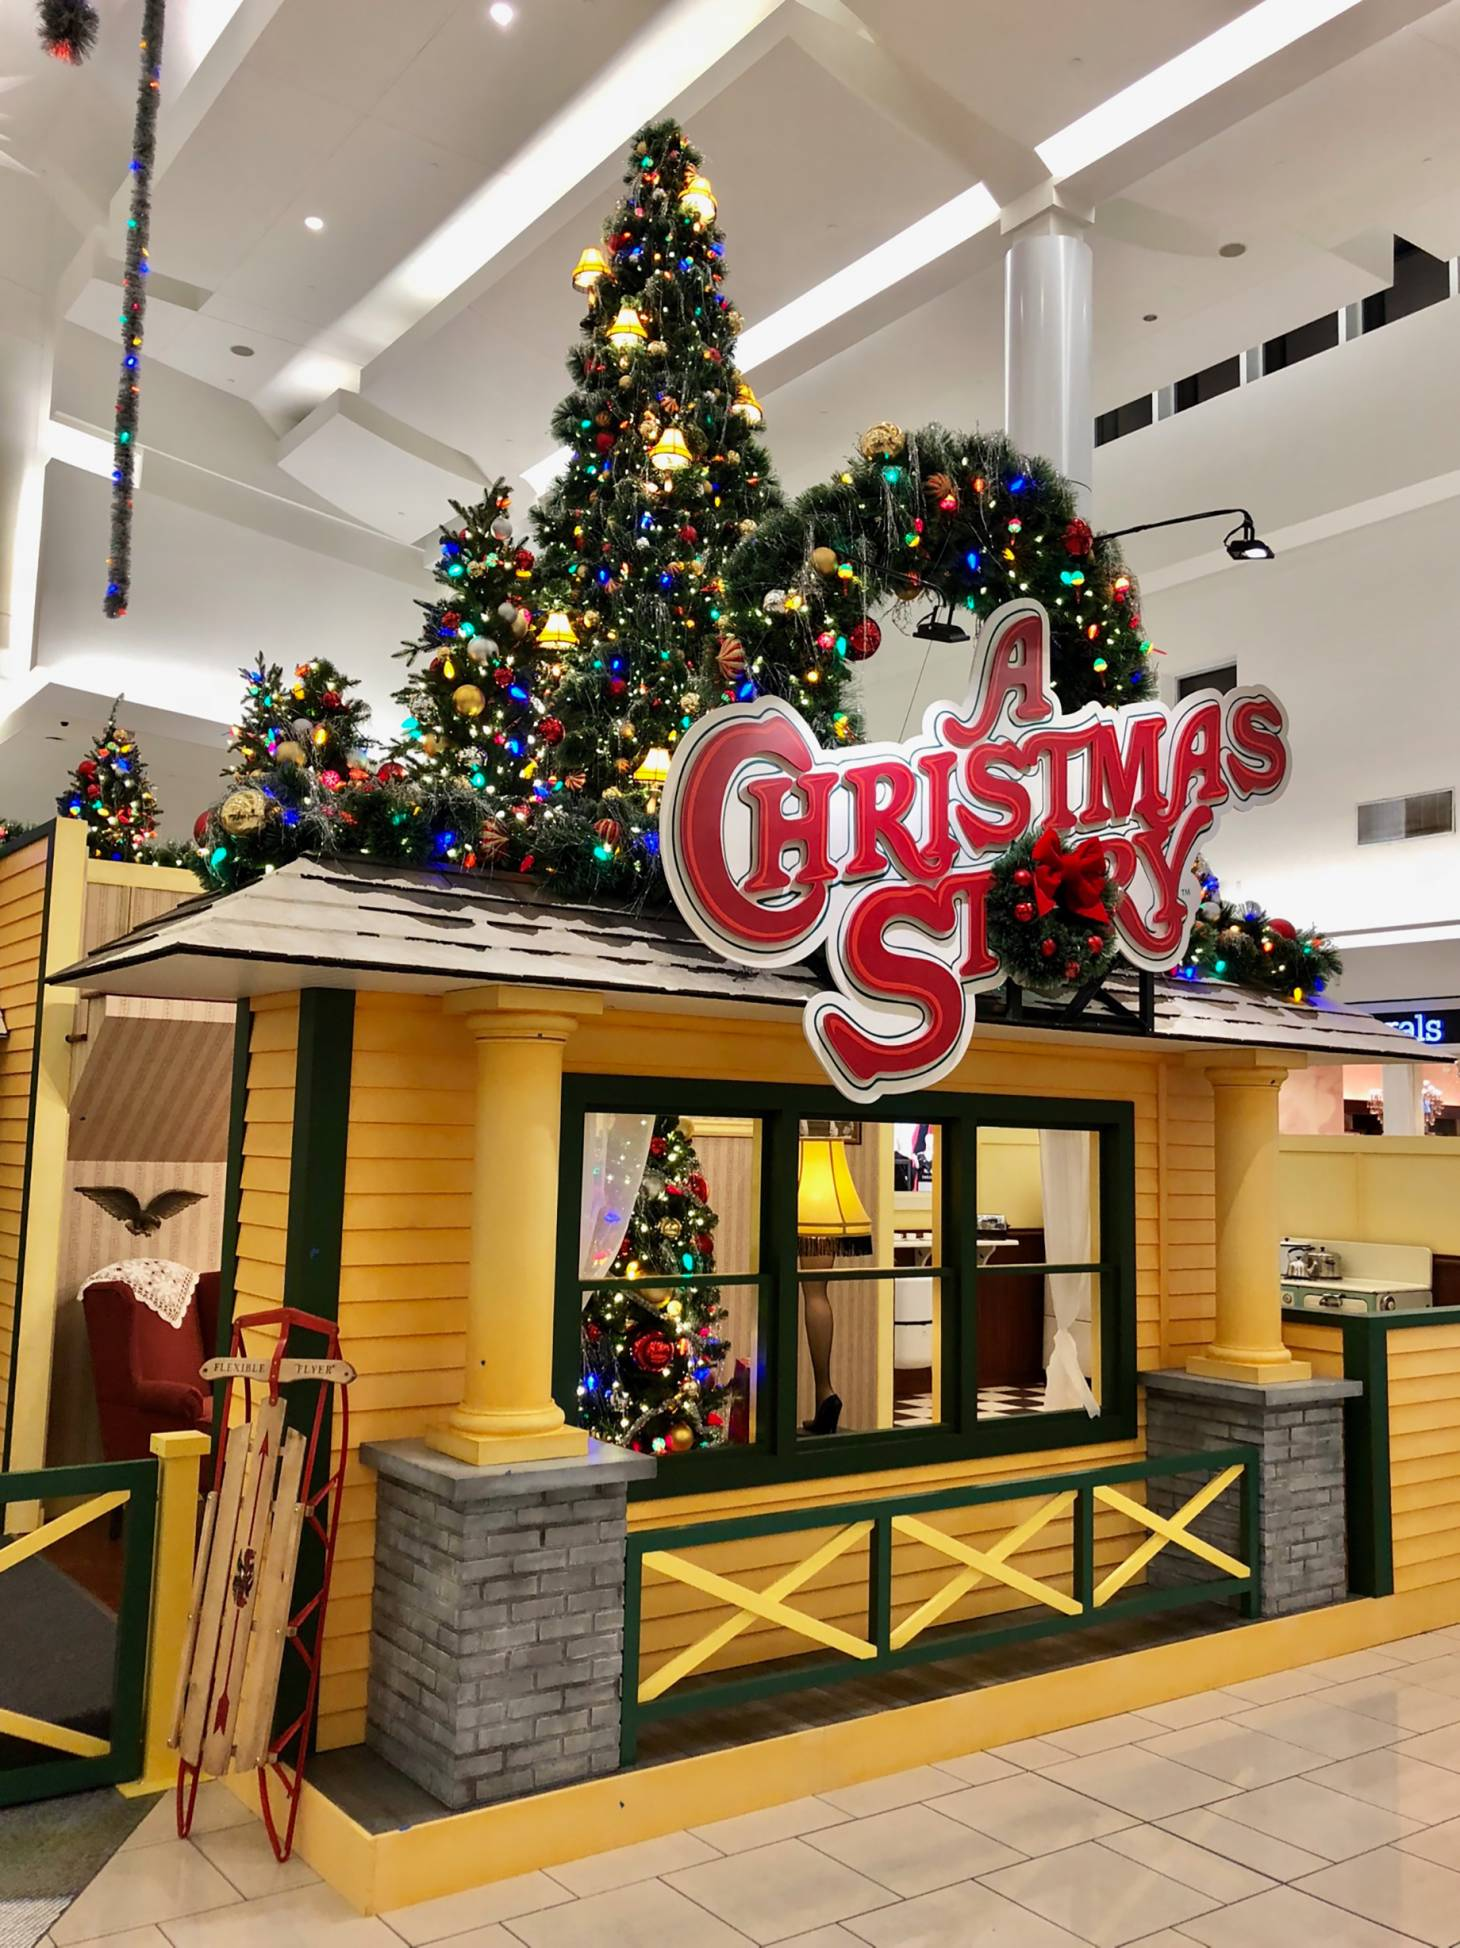 under the title a christmas story experience the set offered consumers a nostalgic environment that combined physical re creations of the sets and - What Year Is Christmas Story Set